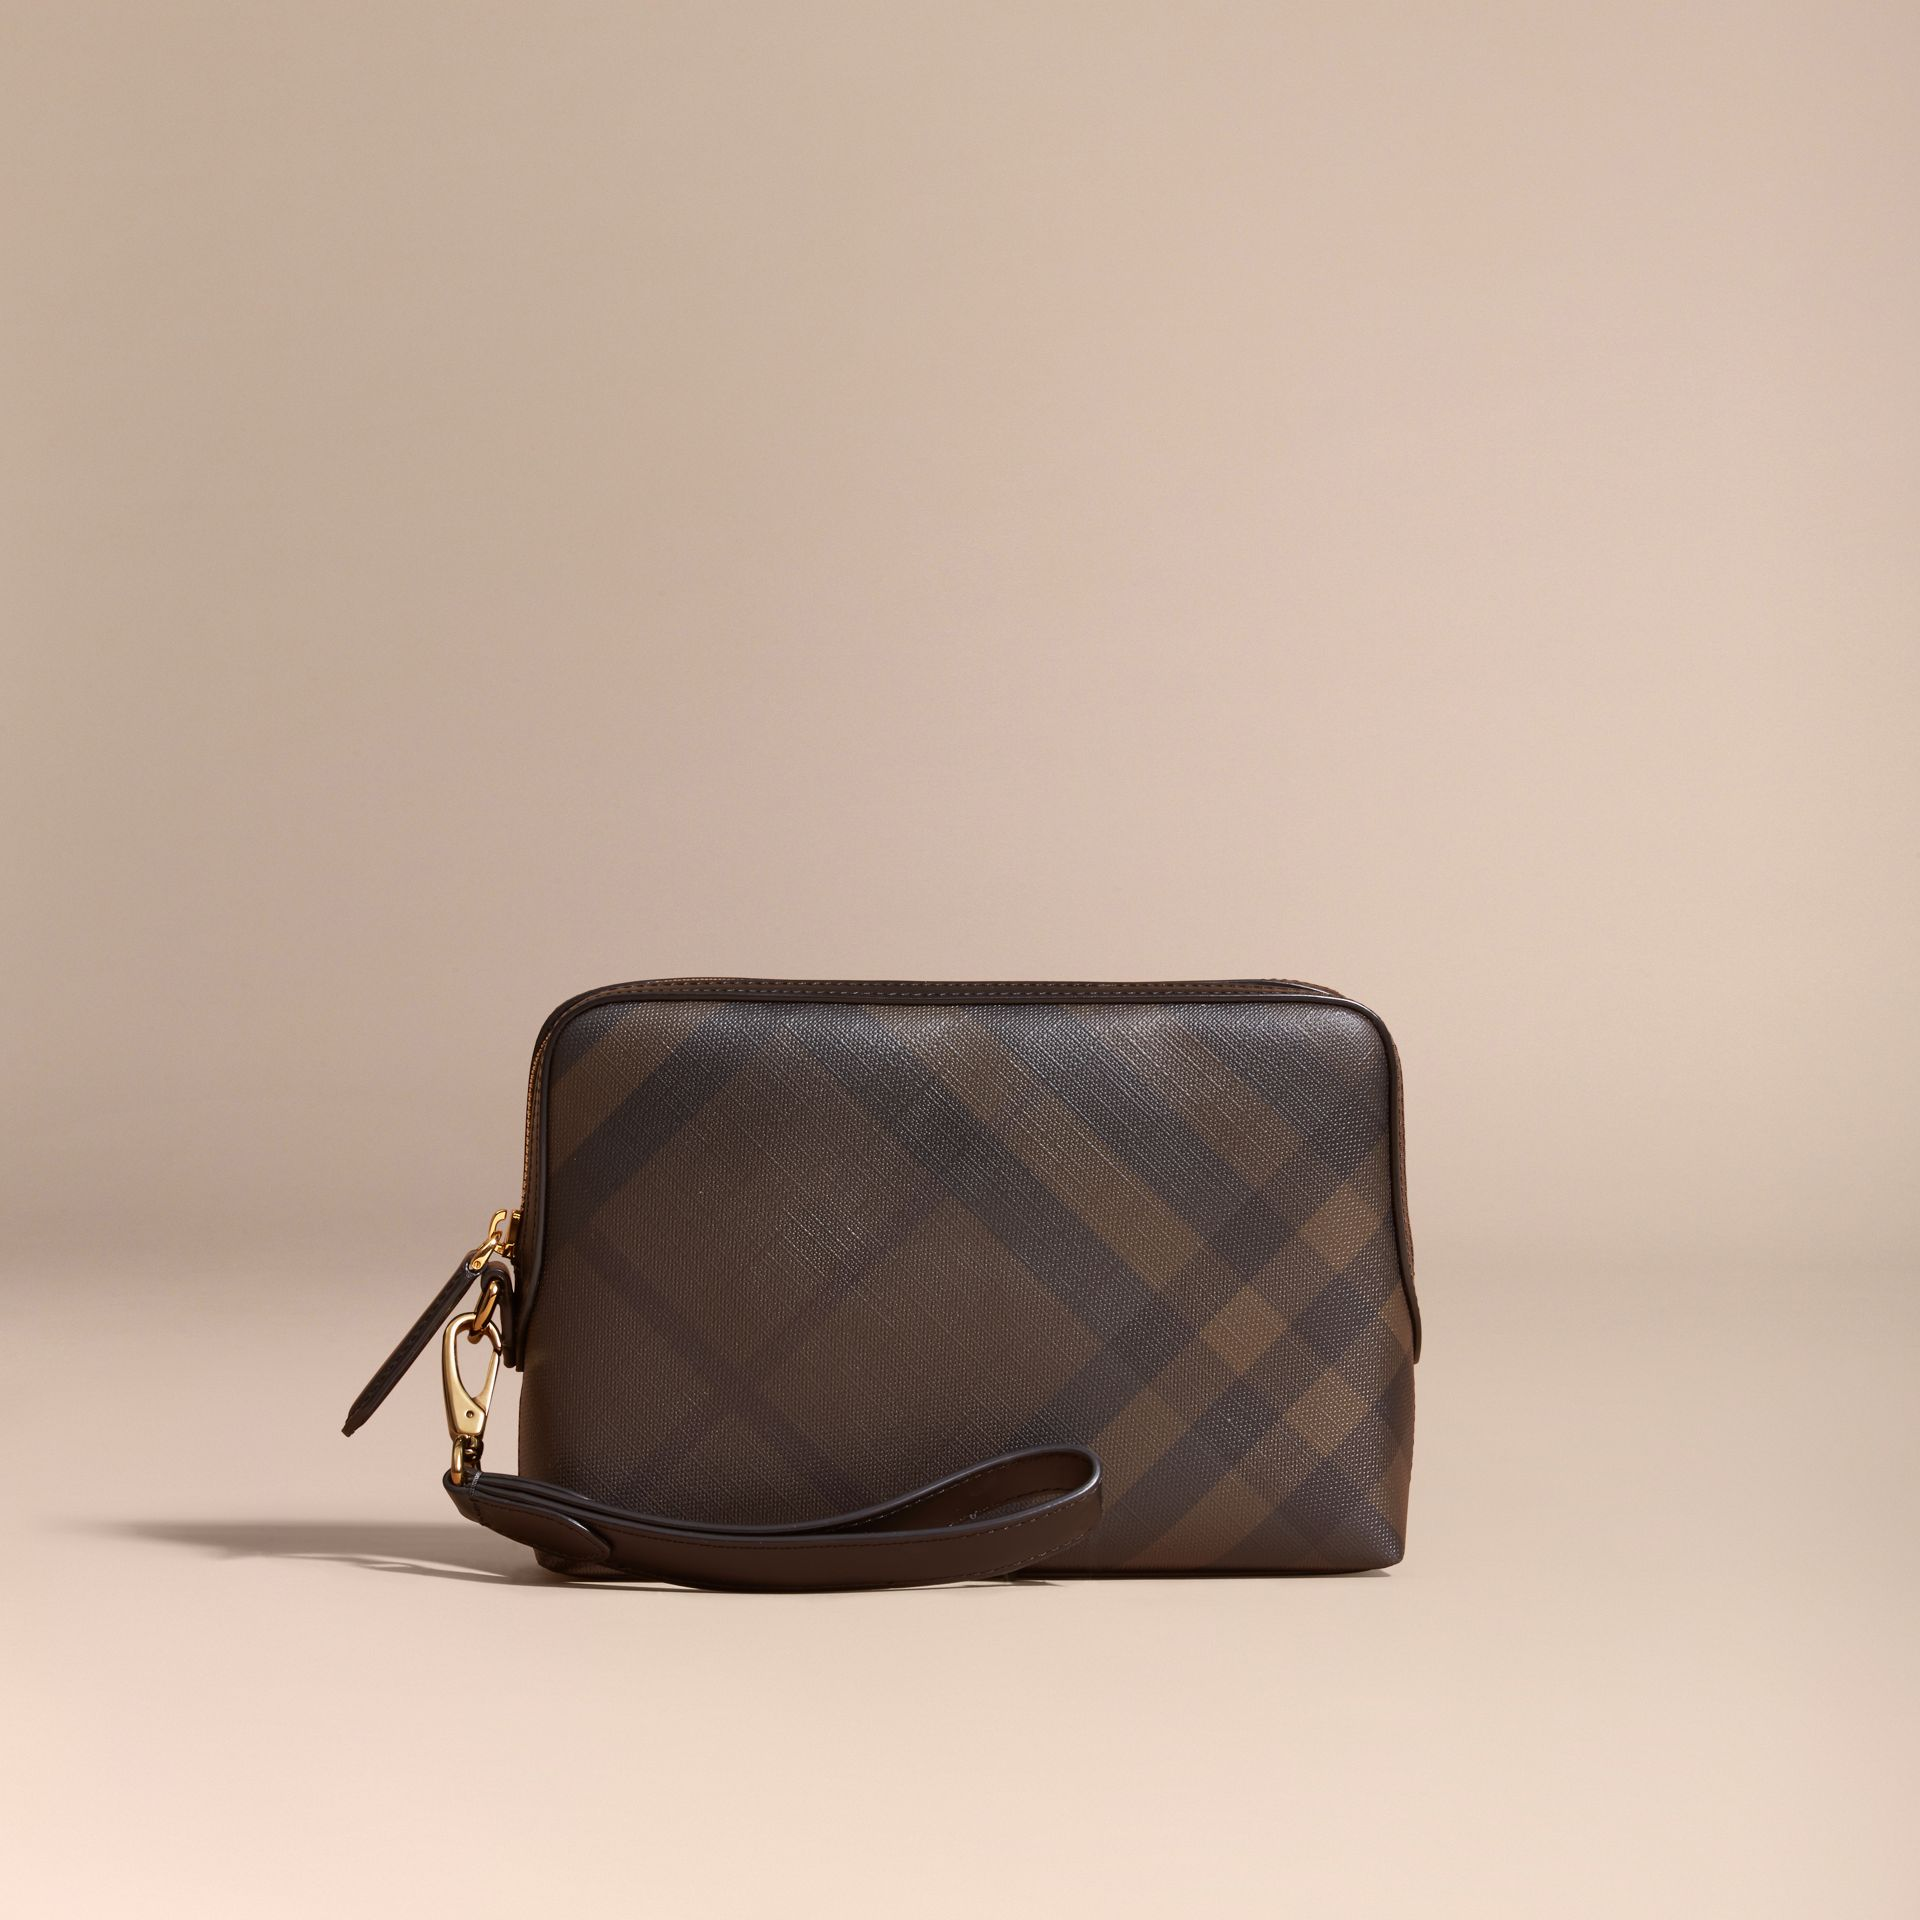 Leather-trimmed London Check Pouch in Chocolate/black - gallery image 6